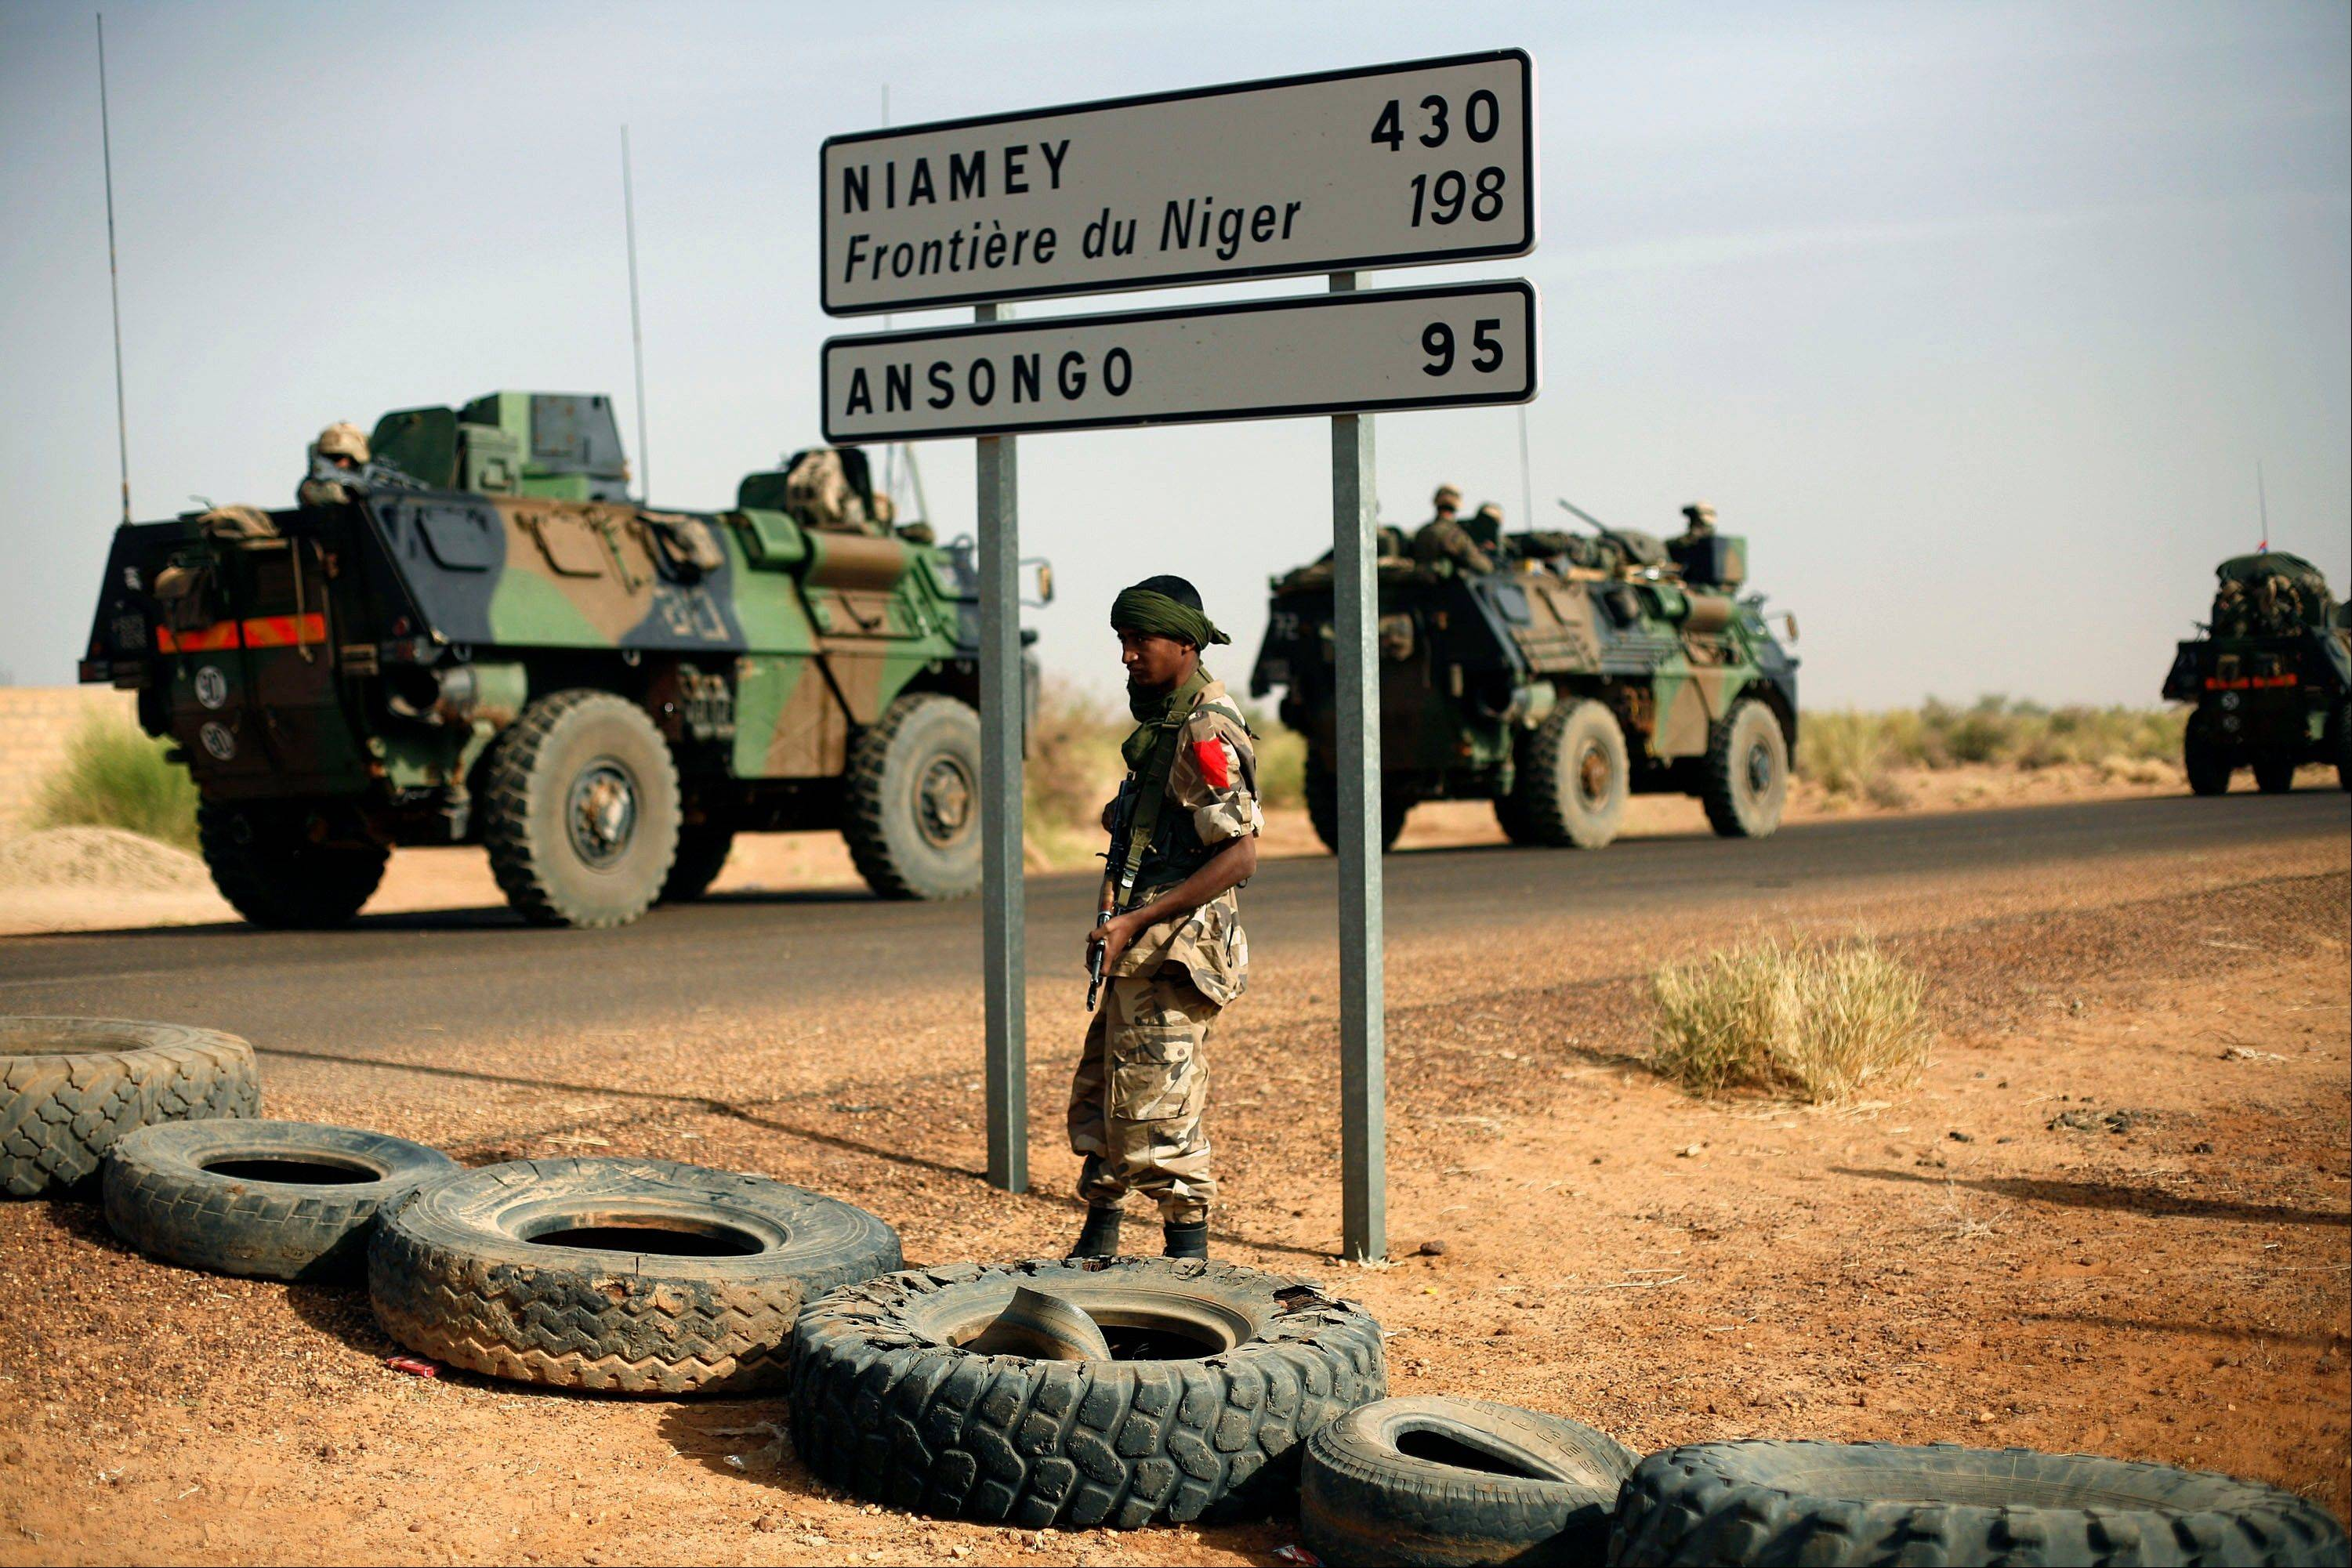 French armored vehicles are seen heading toward the Niger border before making a left turn north in Gao, northern Mali, Wednesday Feb. 6, 2013.